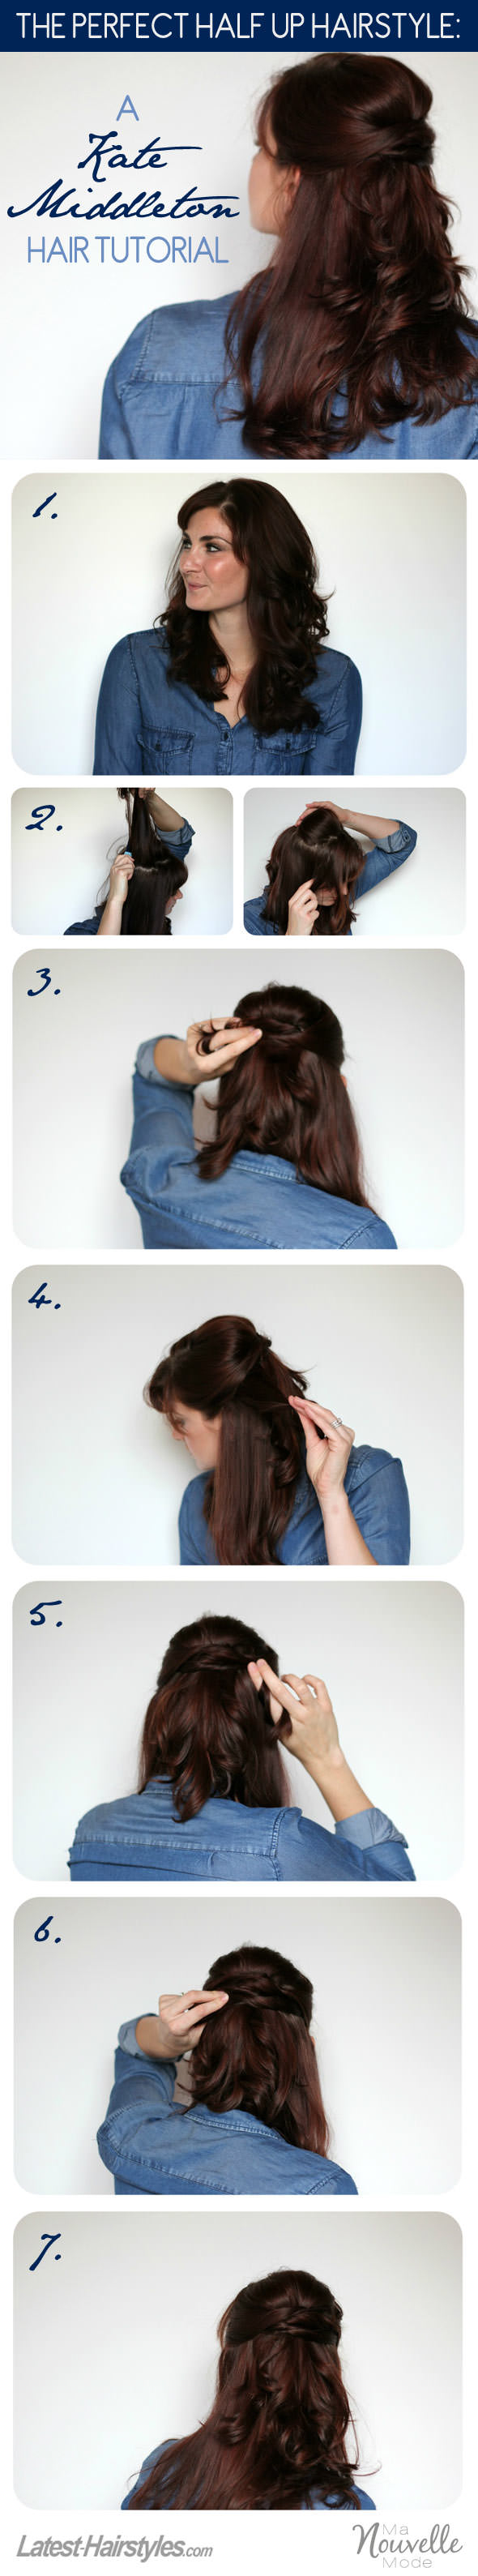 Kate-Middleton-Hair-Tutorial